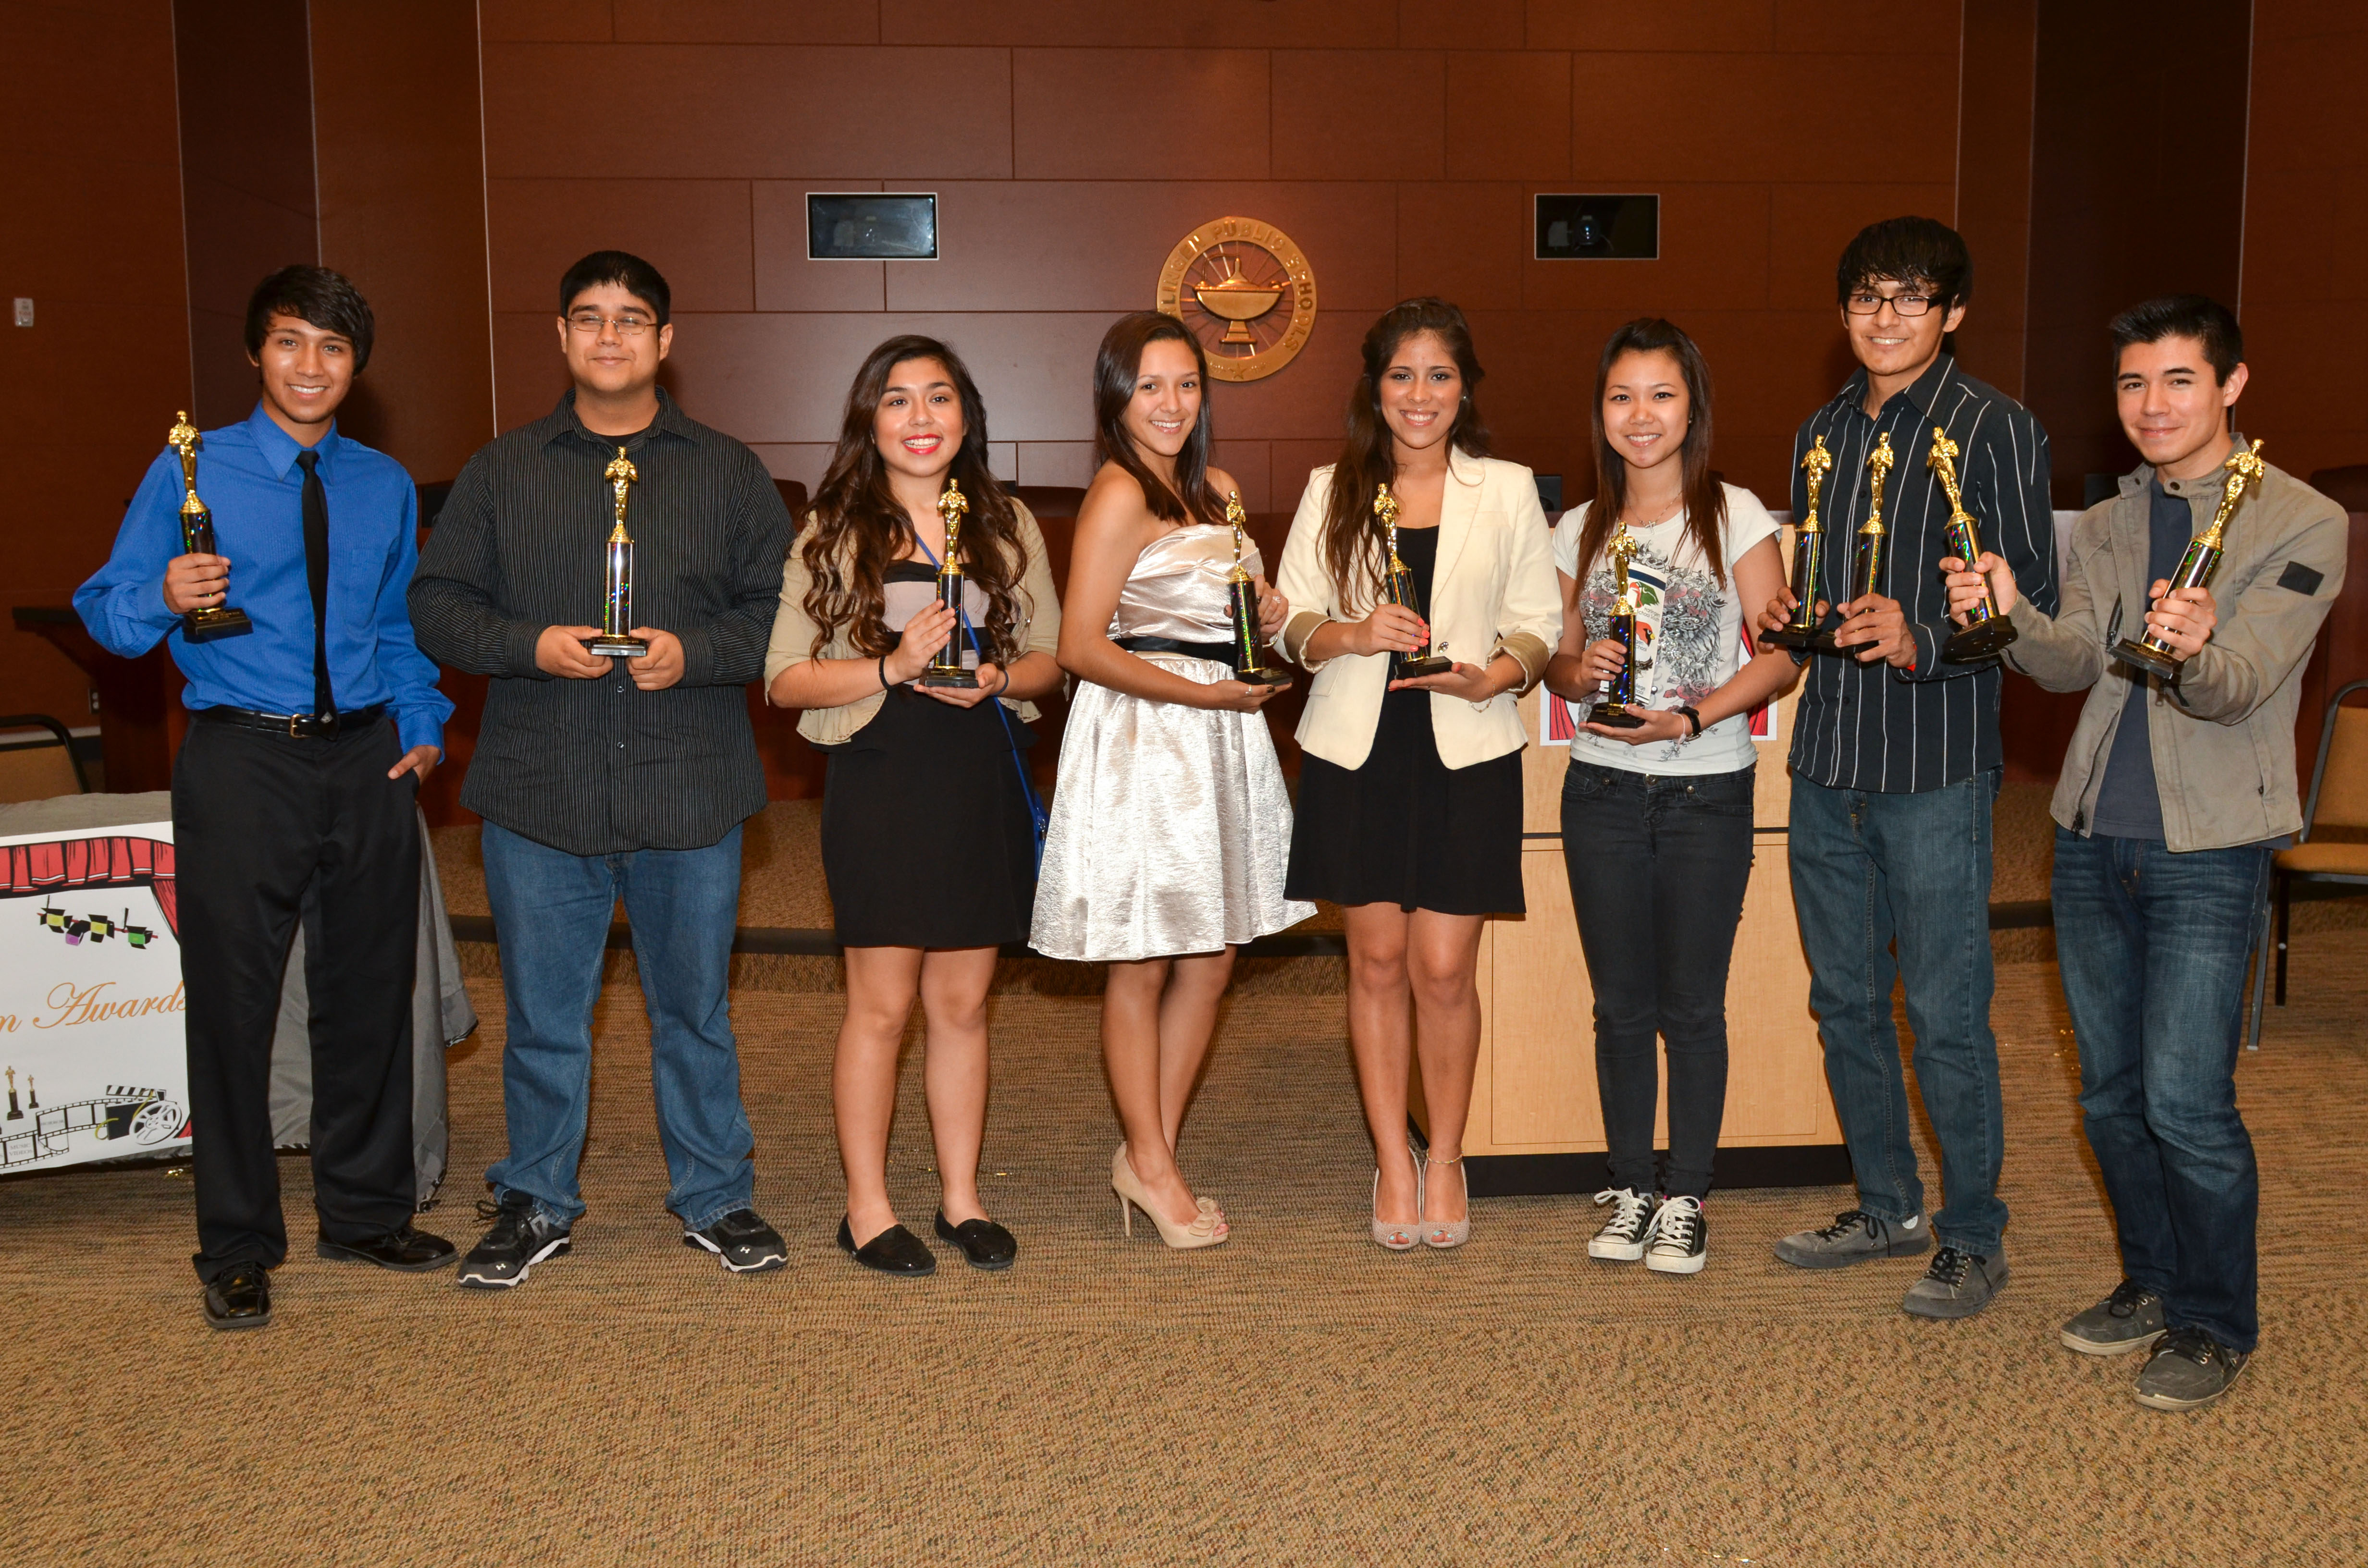 HCISD » Future filmmakers awarded at 2013 Student Film Awards